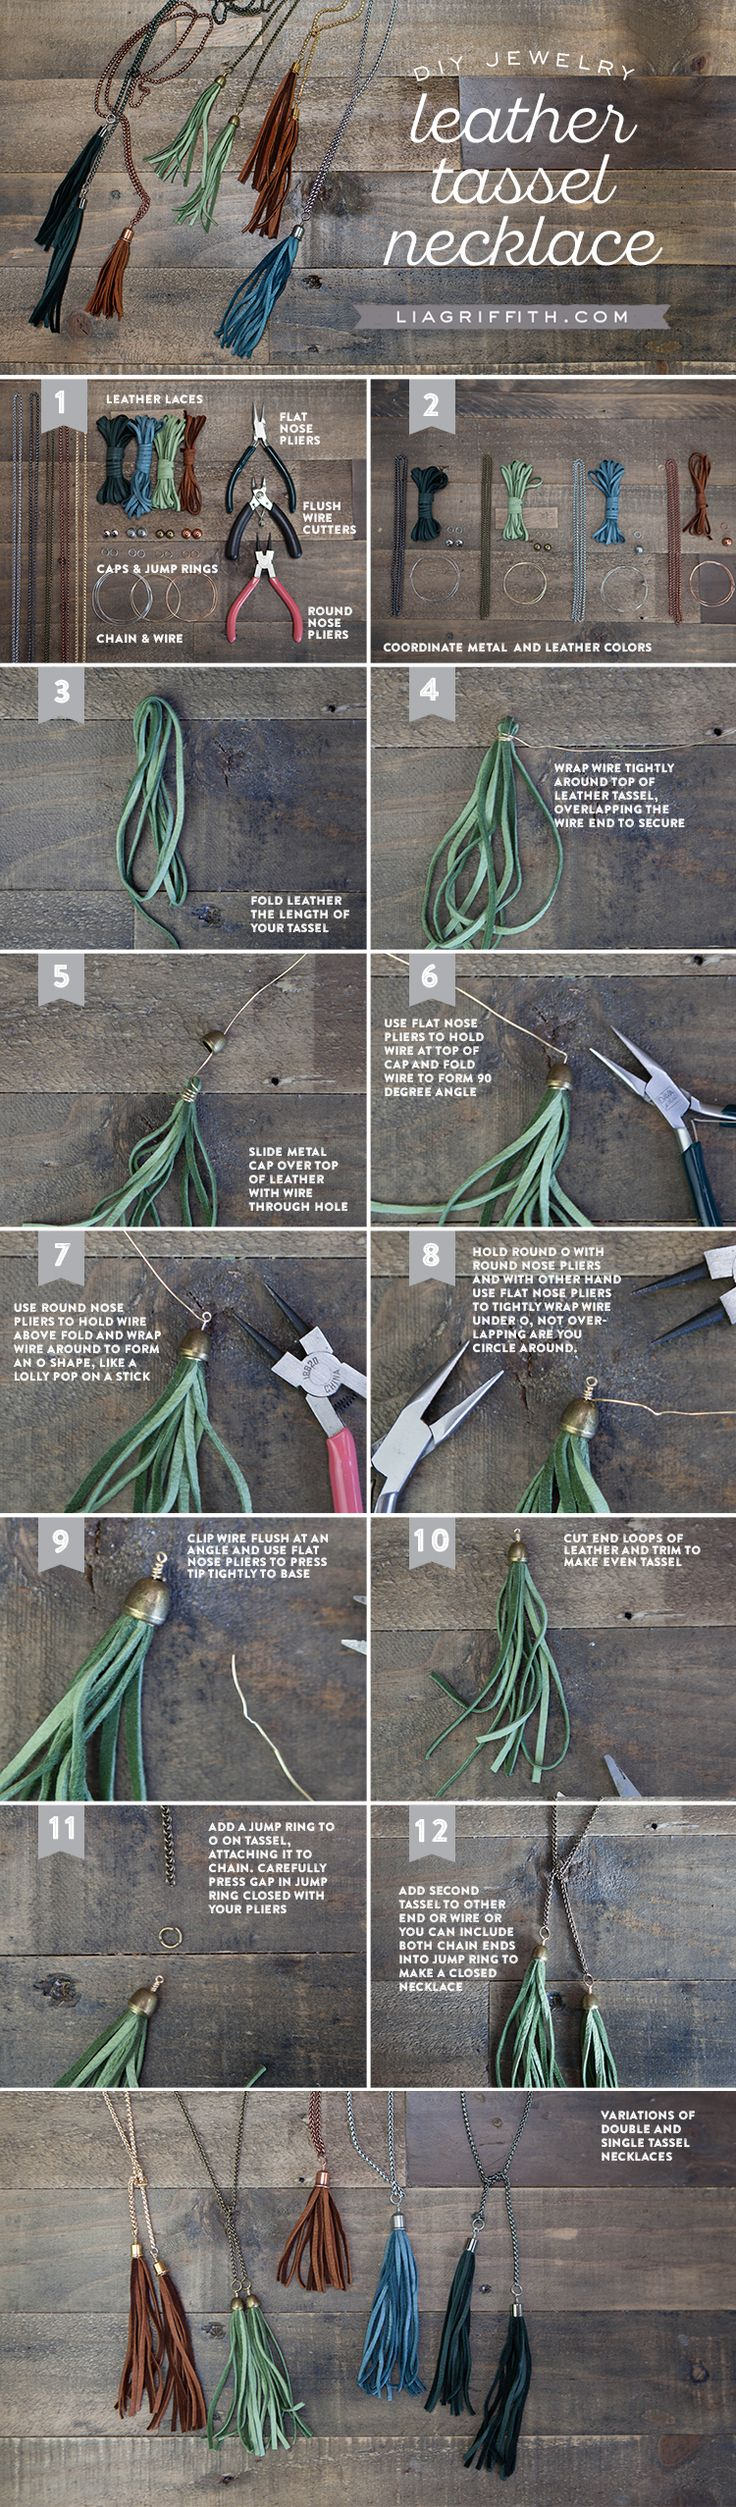 http://rubies.work/0087-ruby-rings/ DIY Leather Tassel Necklace how-to by Michaels Makers Lia Griffith